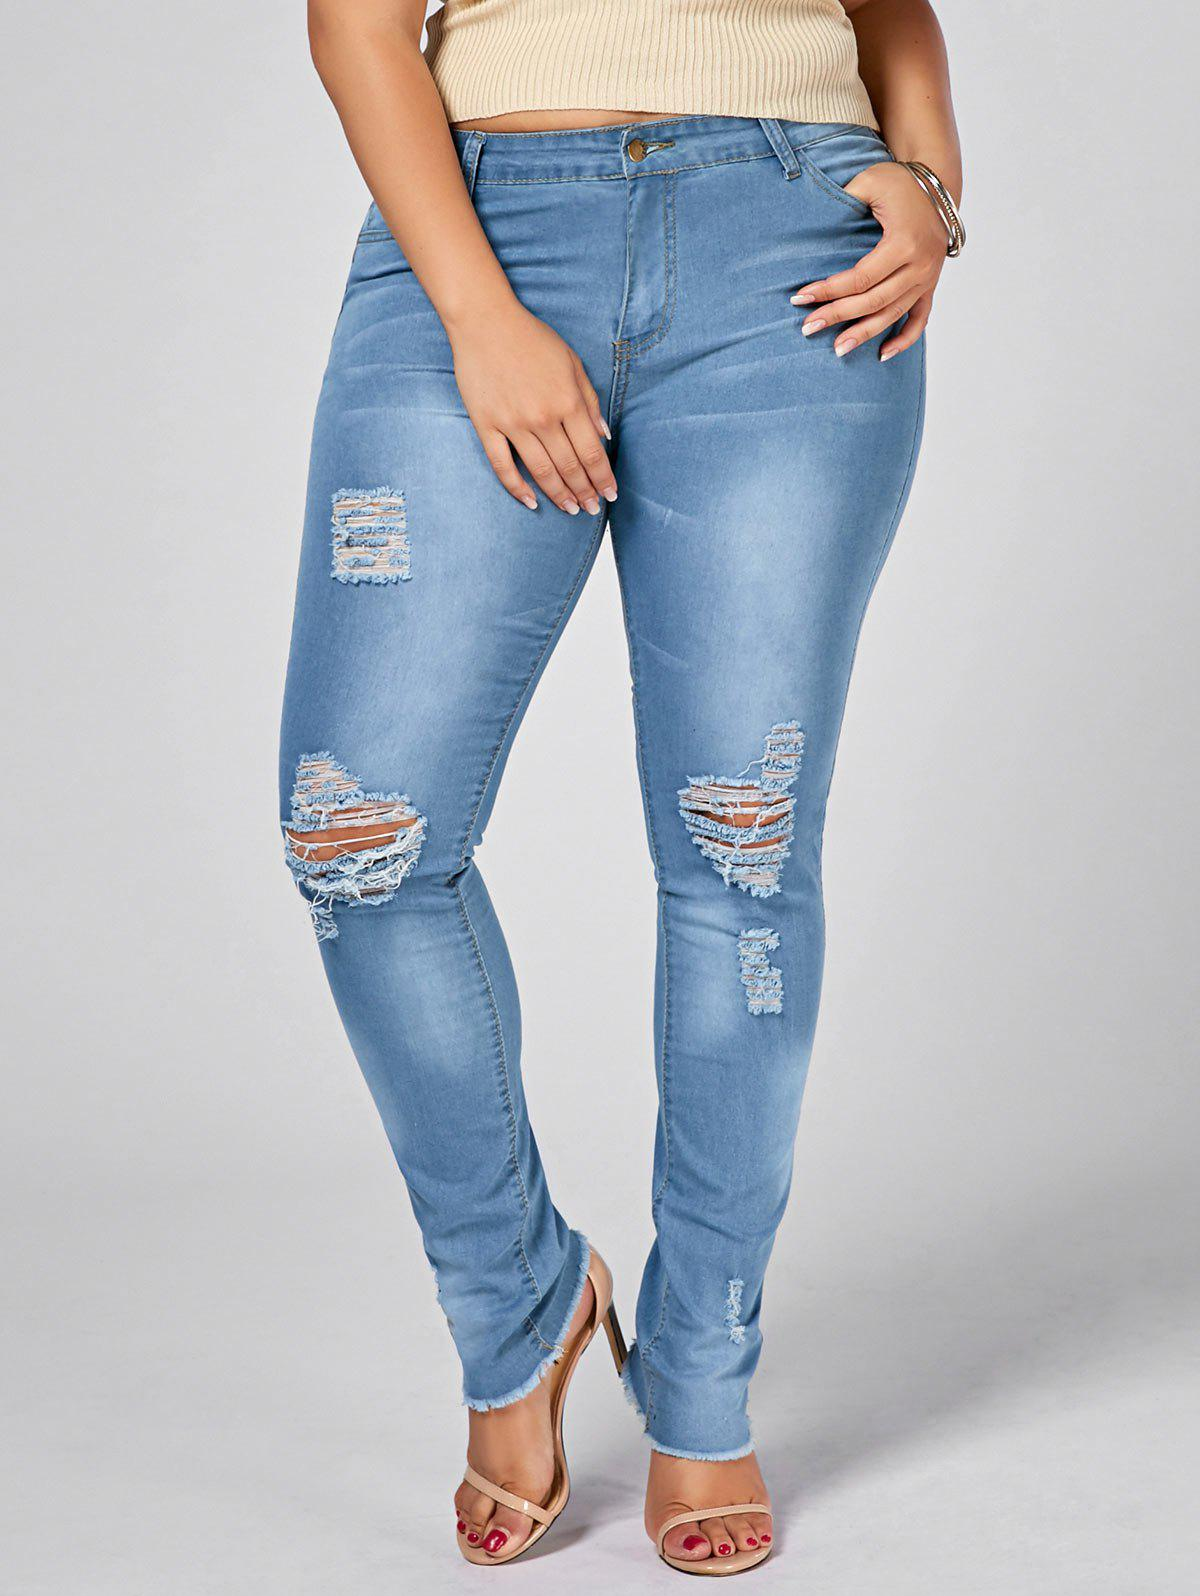 Light Wash Plus Size Ripped JeansWOMEN<br><br>Size: 2XL; Color: DENIM BLUE; Style: Fashion; Length: Ninth; Material: Jeans,Polyester; Fit Type: Skinny; Waist Type: Low; Closure Type: Zipper Fly; Pattern Type: Solid; Embellishment: Hole,Hollow Out; Pant Style: Pencil Pants; Weight: 0.4500kg; Package Contents: 1 x Jeans;